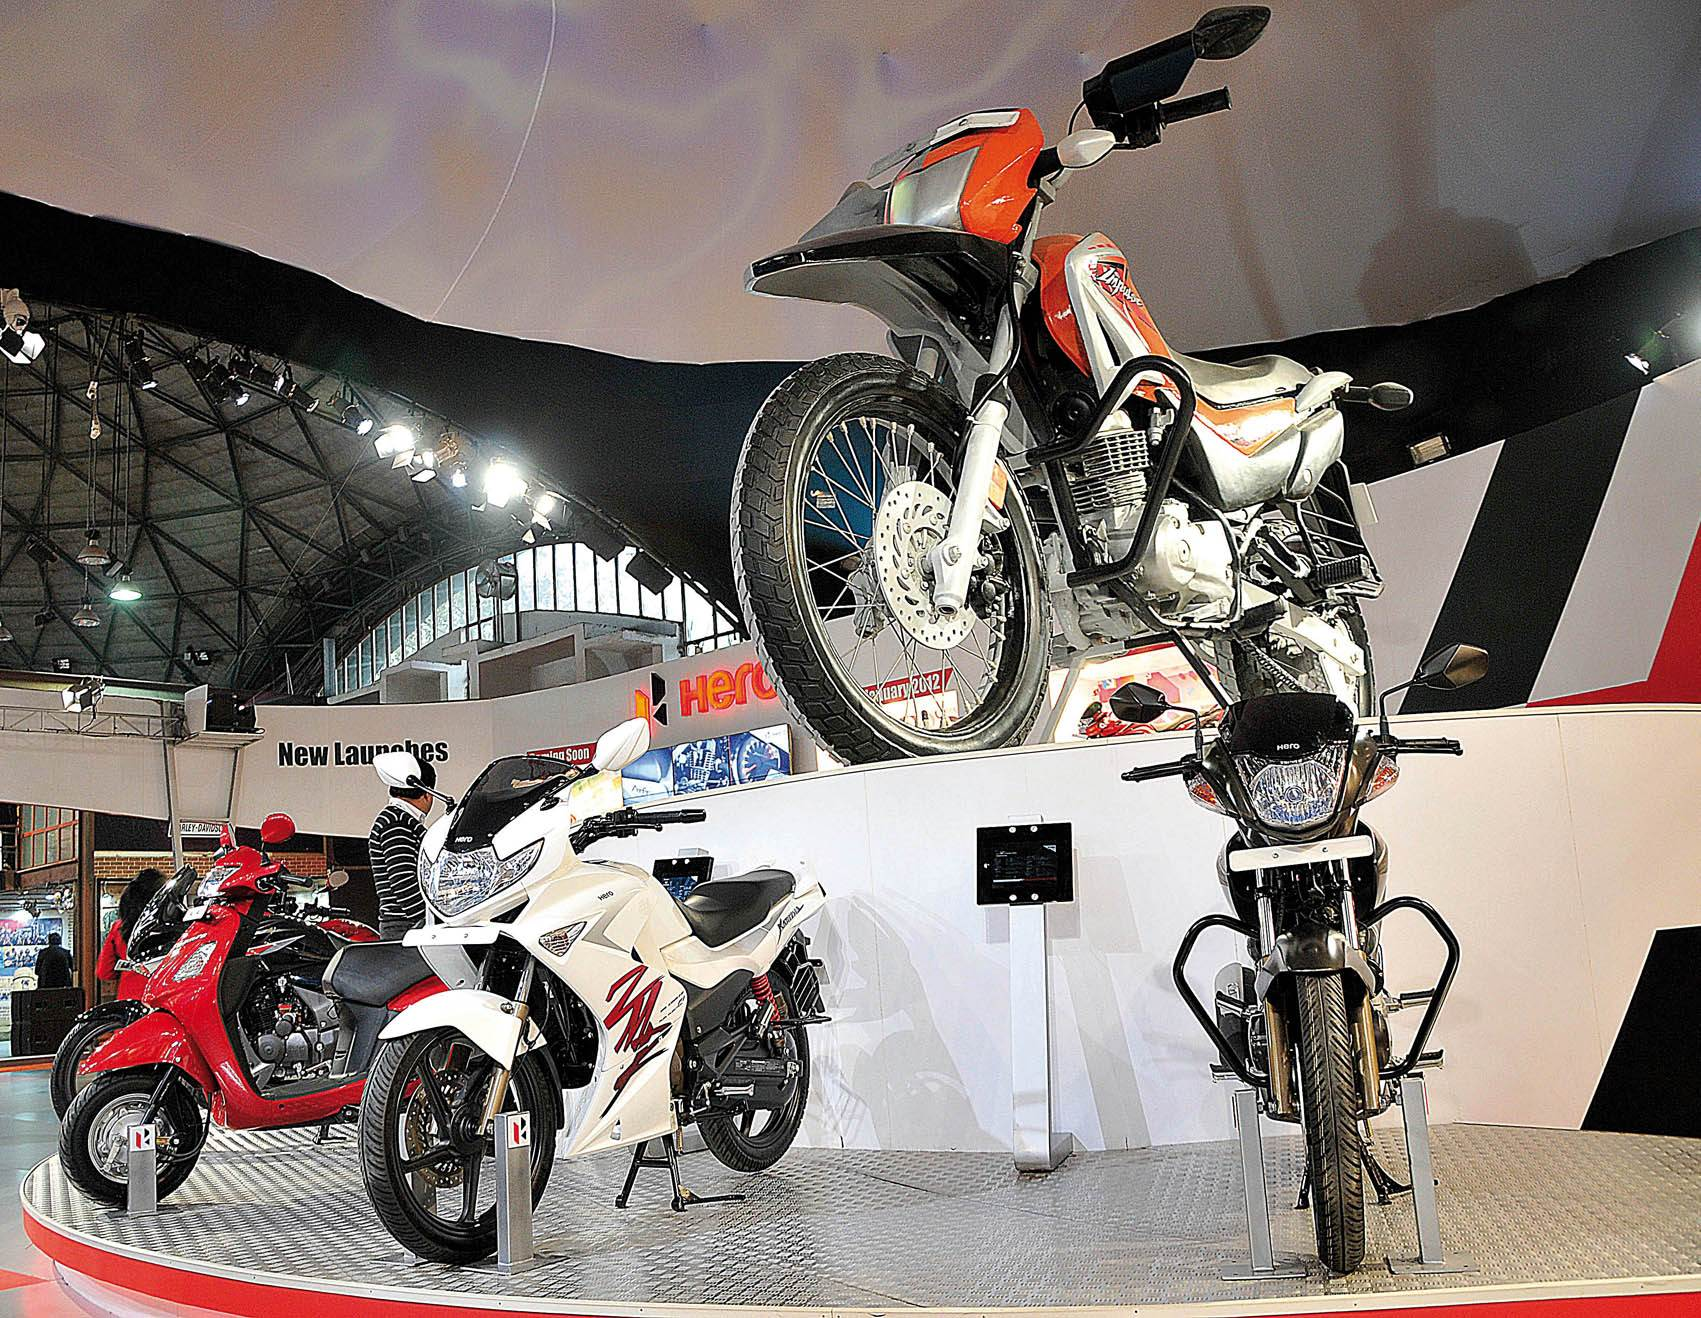 hero-motocorp-for-email